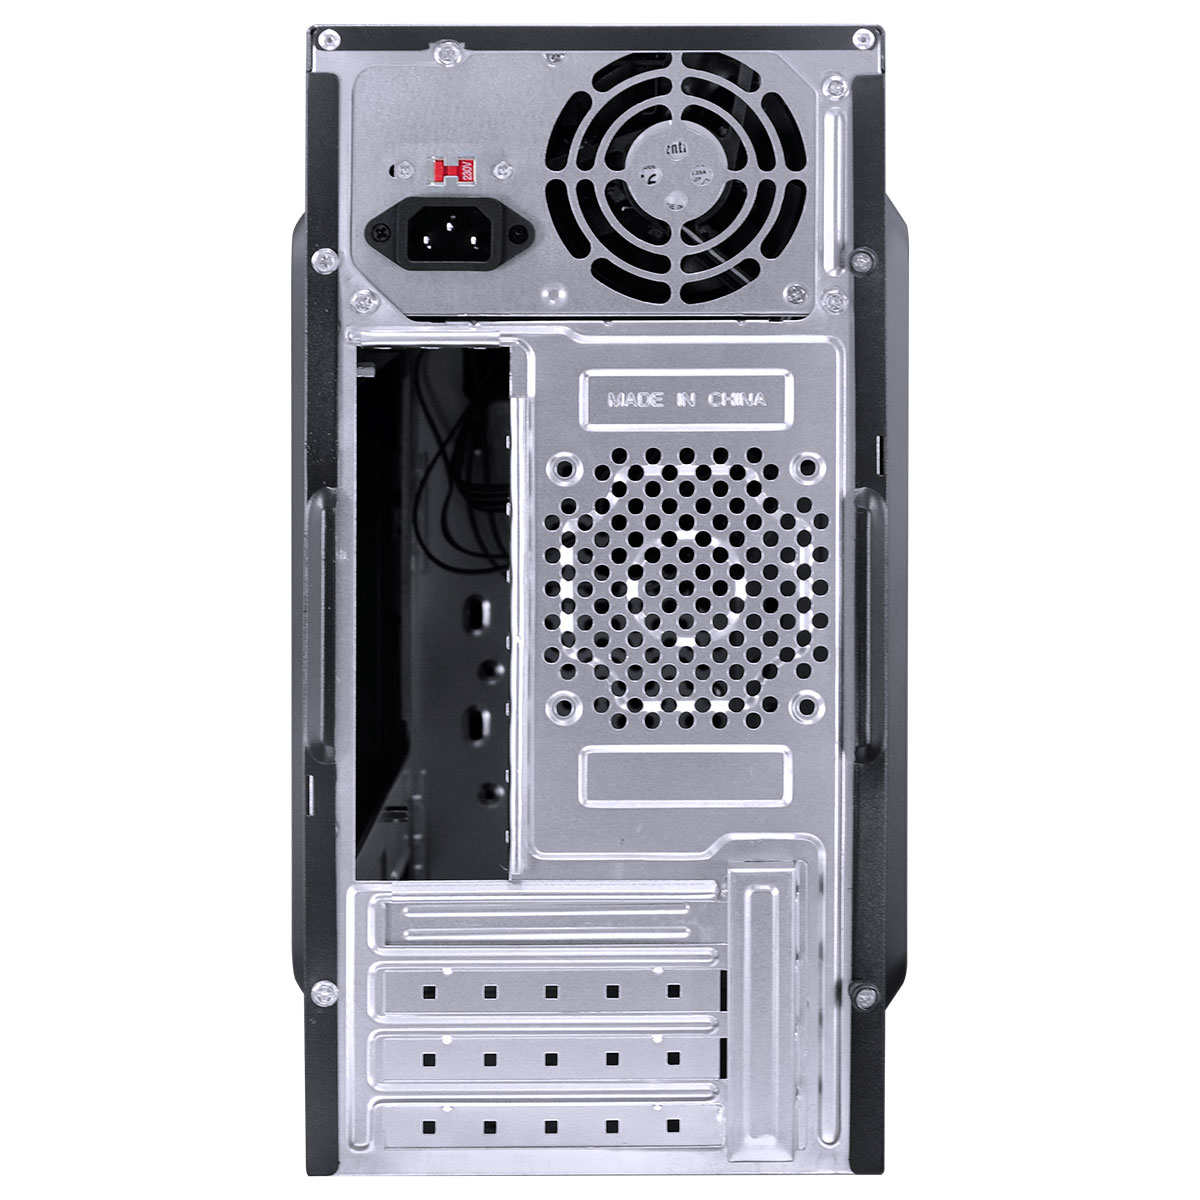 COMPUTADOR BUSINESS B300 - I3 7100 3.9GHZ MEM 4GB DDR4 HD 500GB HDMI/VGA FONTE 200W